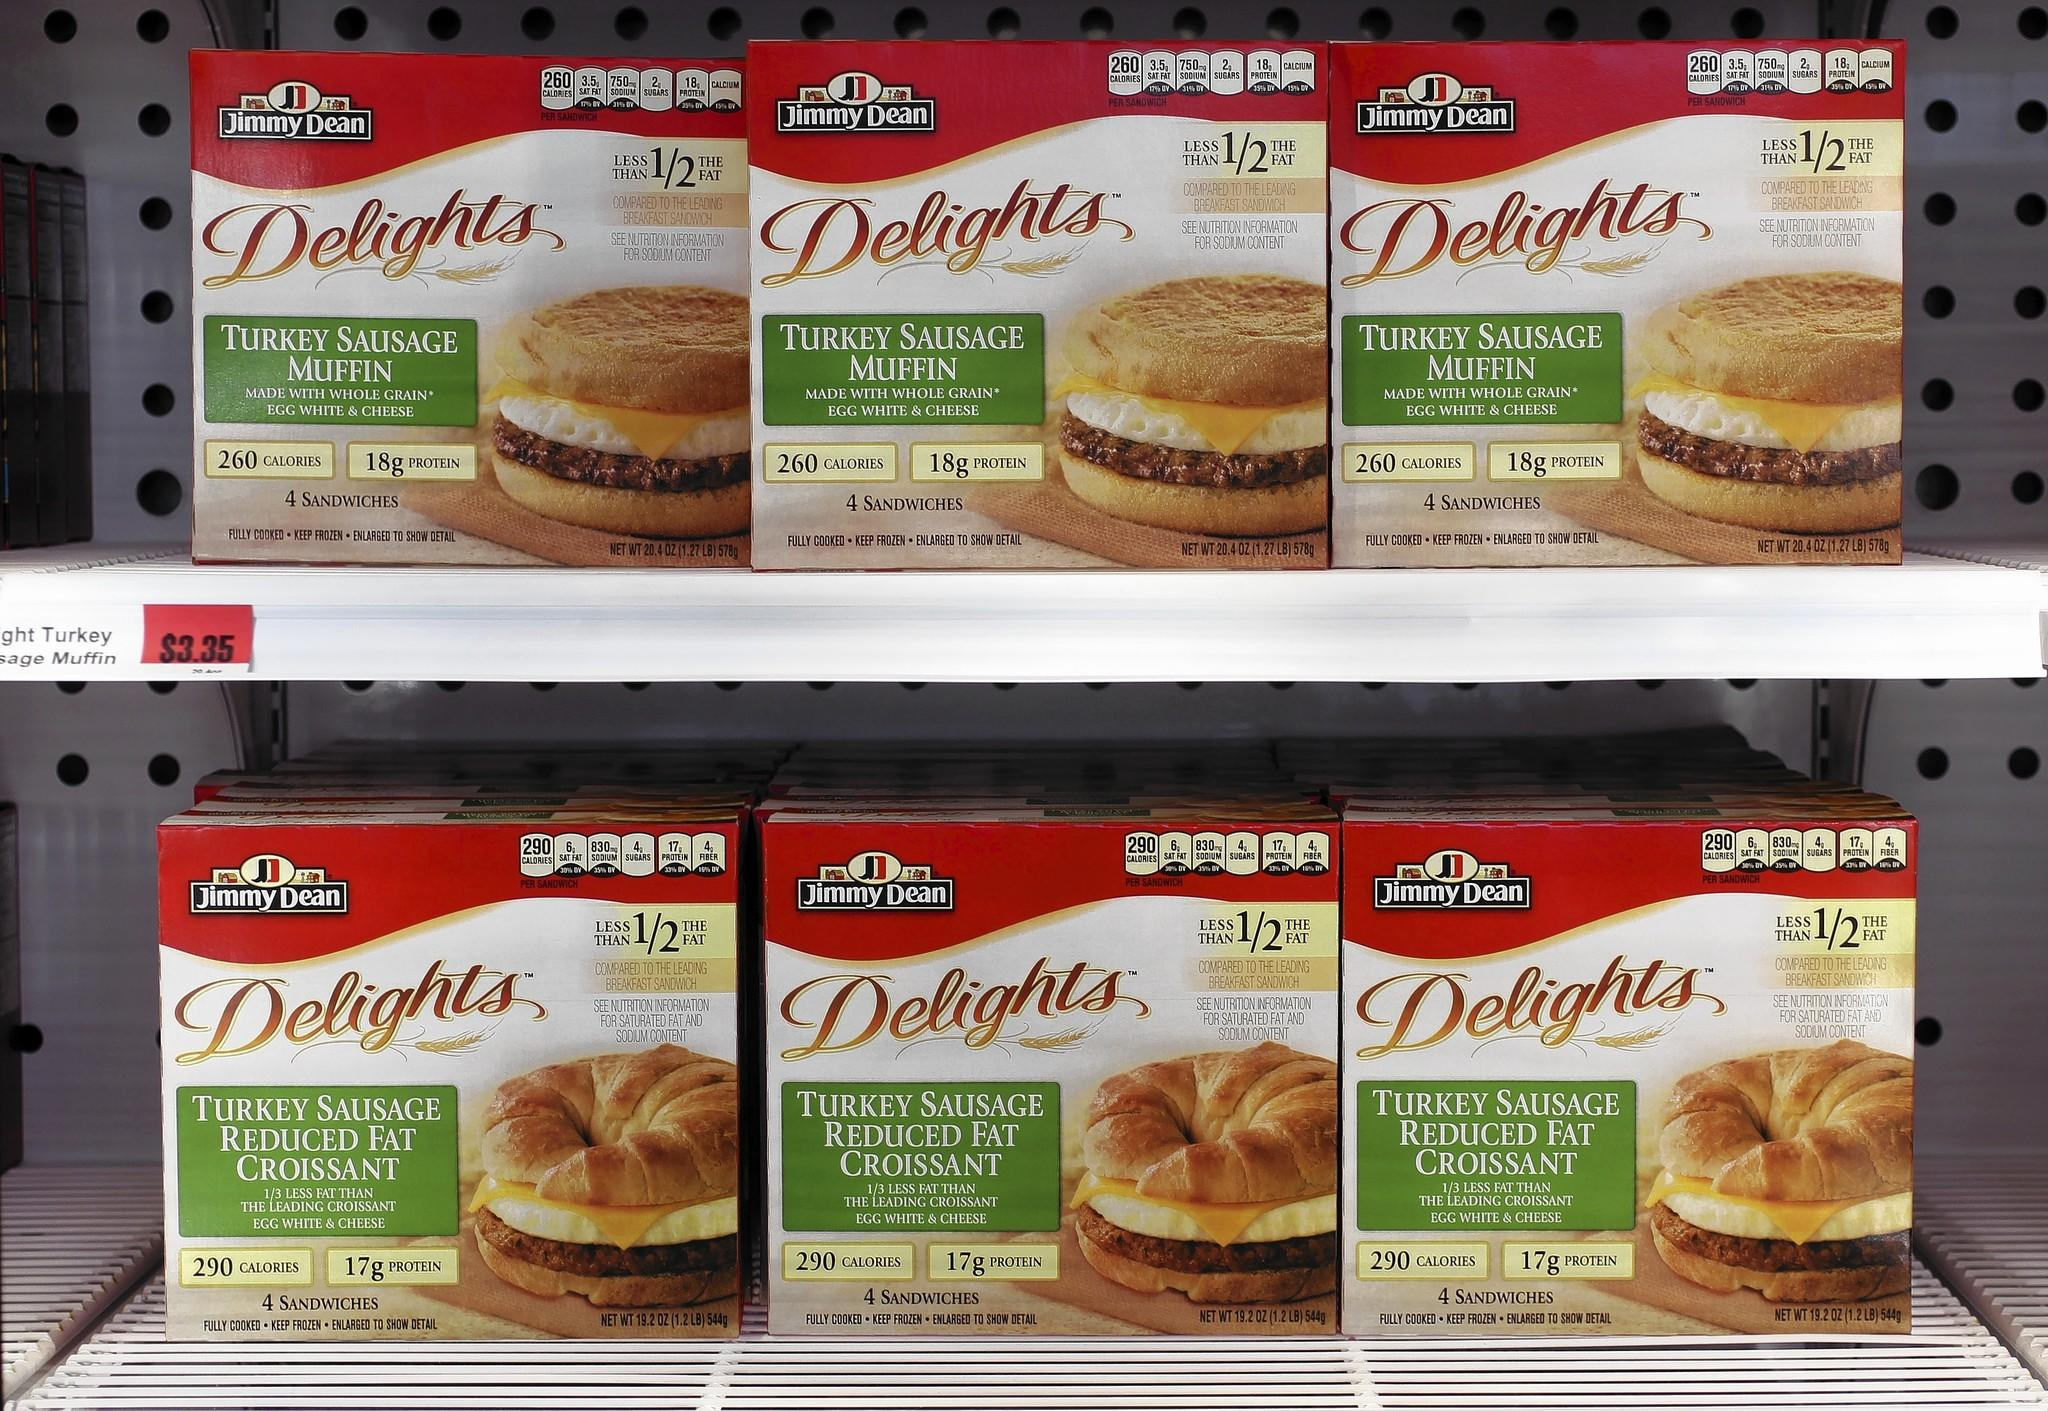 Chicago-based Hillshire Brands Co. is planning a slew of new products and hunting for new business this year as it seeks to maintain its position in meats and frozen foods, company officials said Thursday.